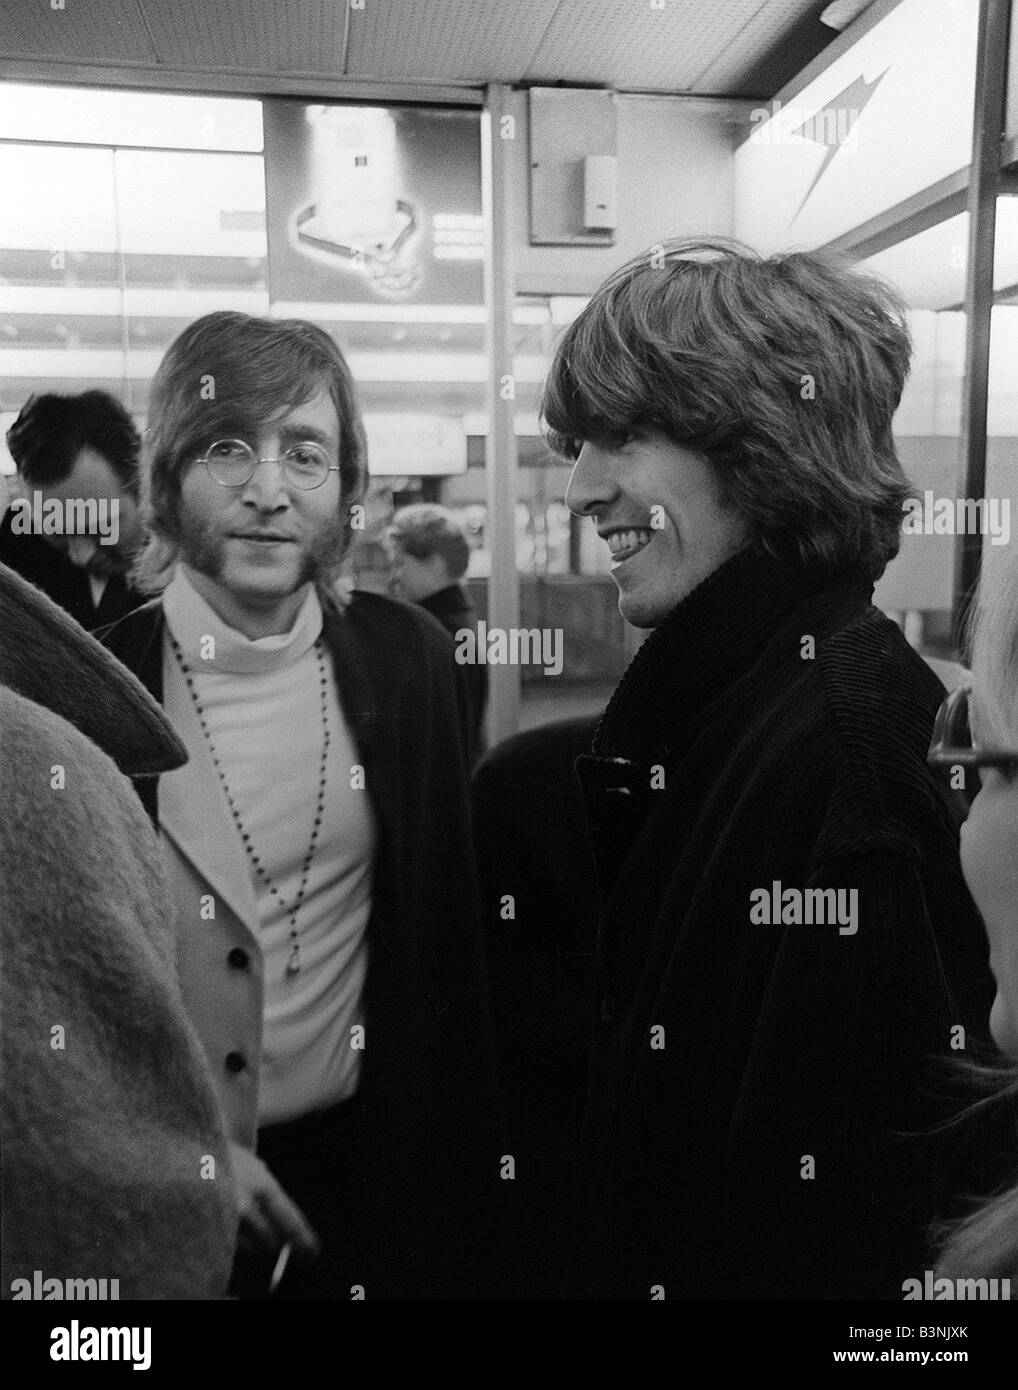 Beatles John Lennon And George Harrison At Heathrow Airport Before Departing To India February 1968